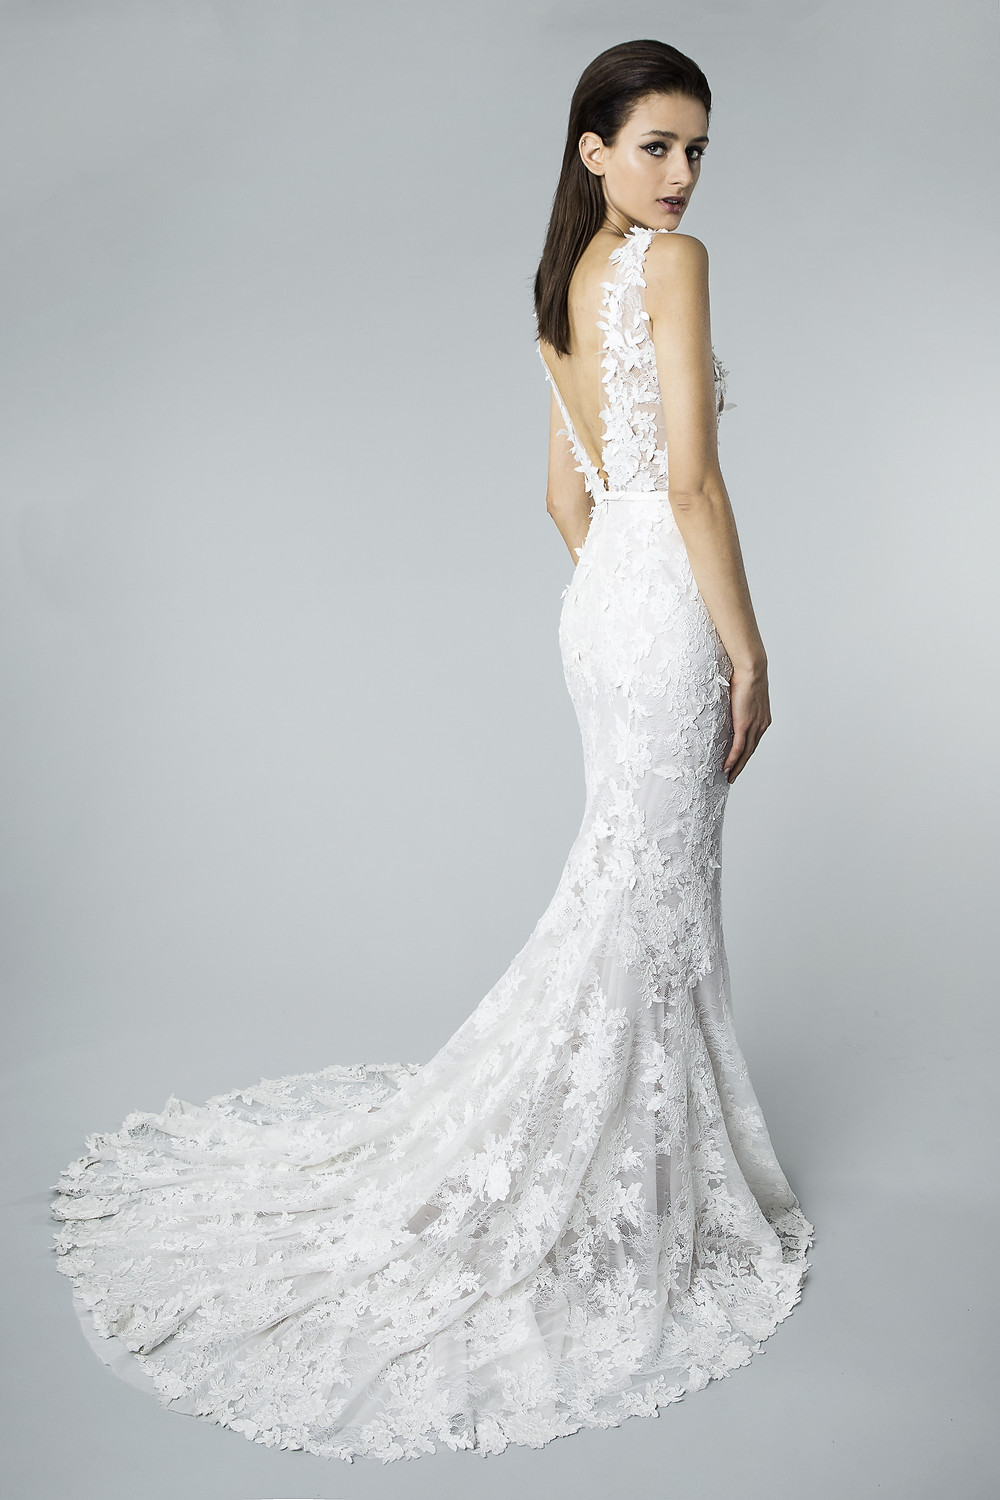 A Mira Zwillinger lace mermaid fit and flare wedding dress with a low back